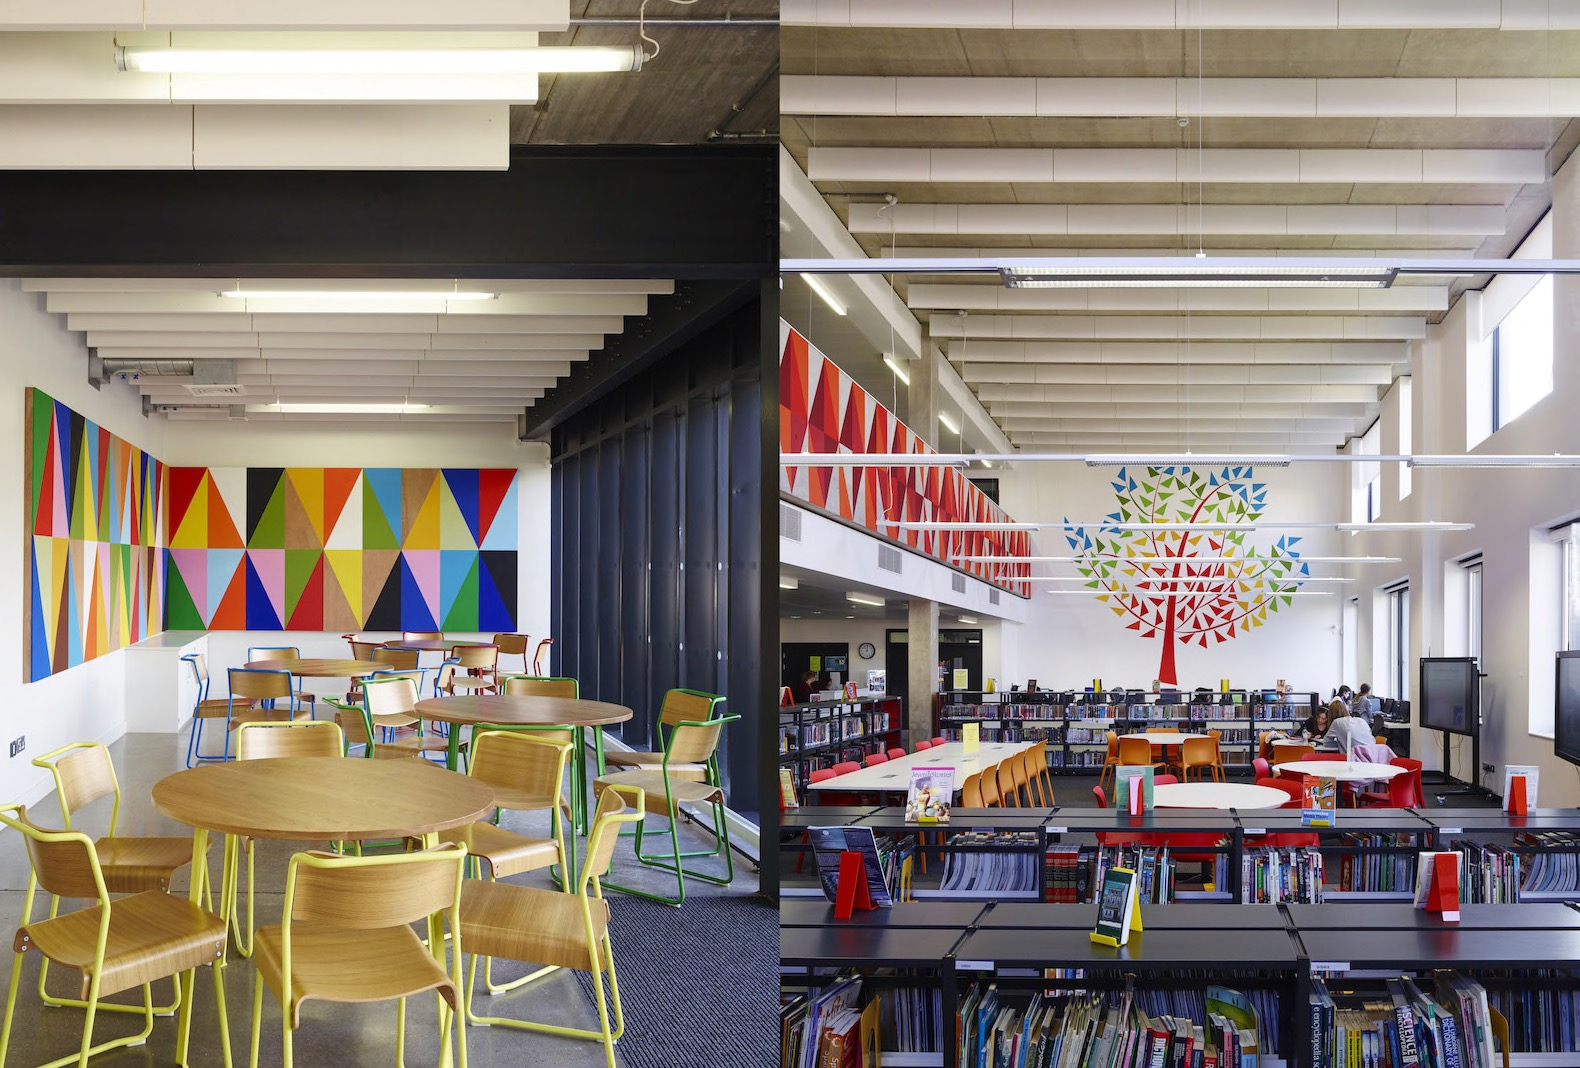 Burntwood School Wins 2015 Riba Stirling Prize For The Uk S Best New Building Inhabitat